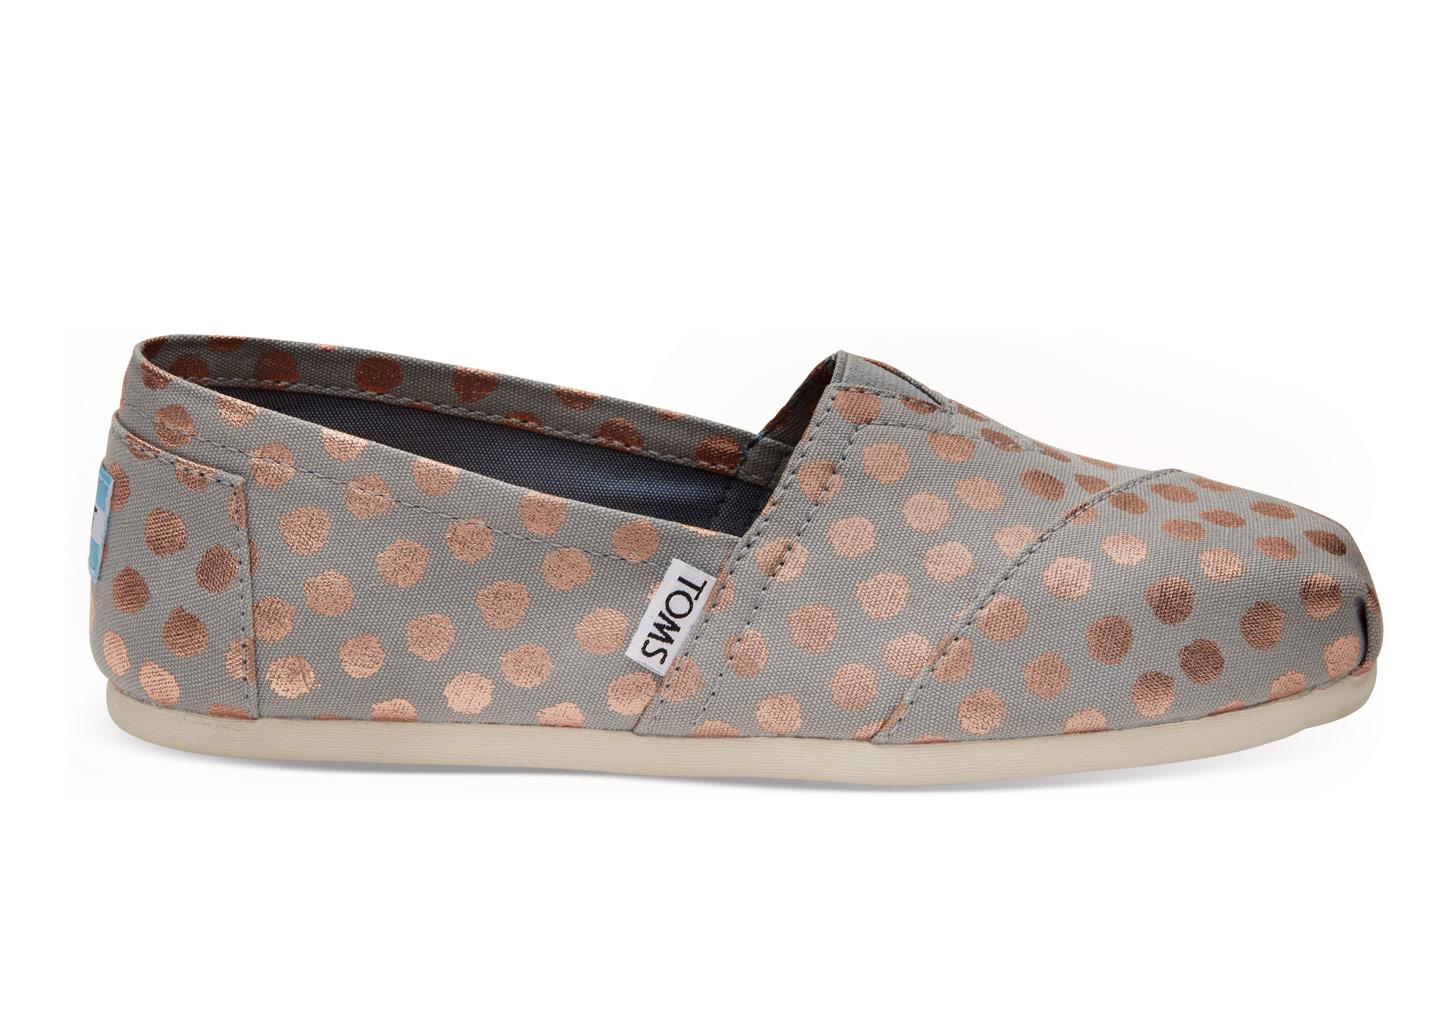 a516eb1075a Lyst - TOMS Drizzle Grey With Rose Gold Foil Polka Dot Women s ...